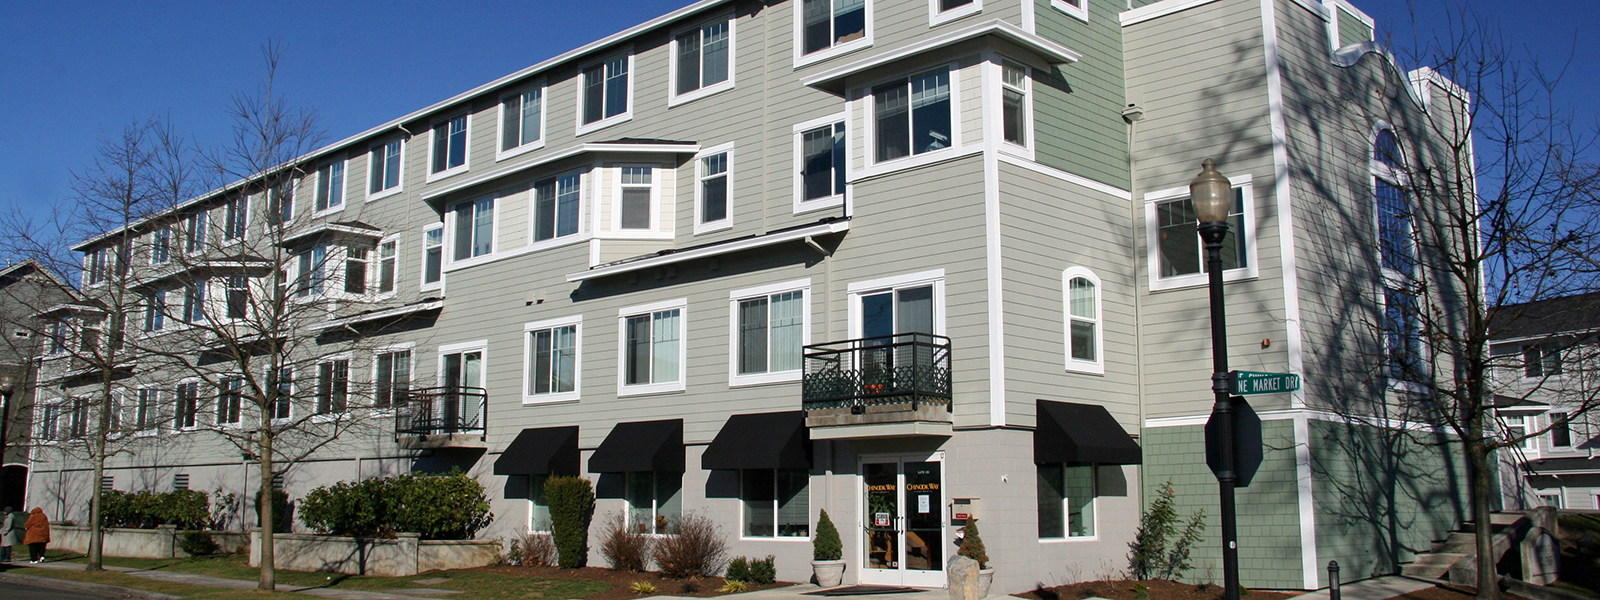 Chinook Way Apartments - Fairview, Oregon